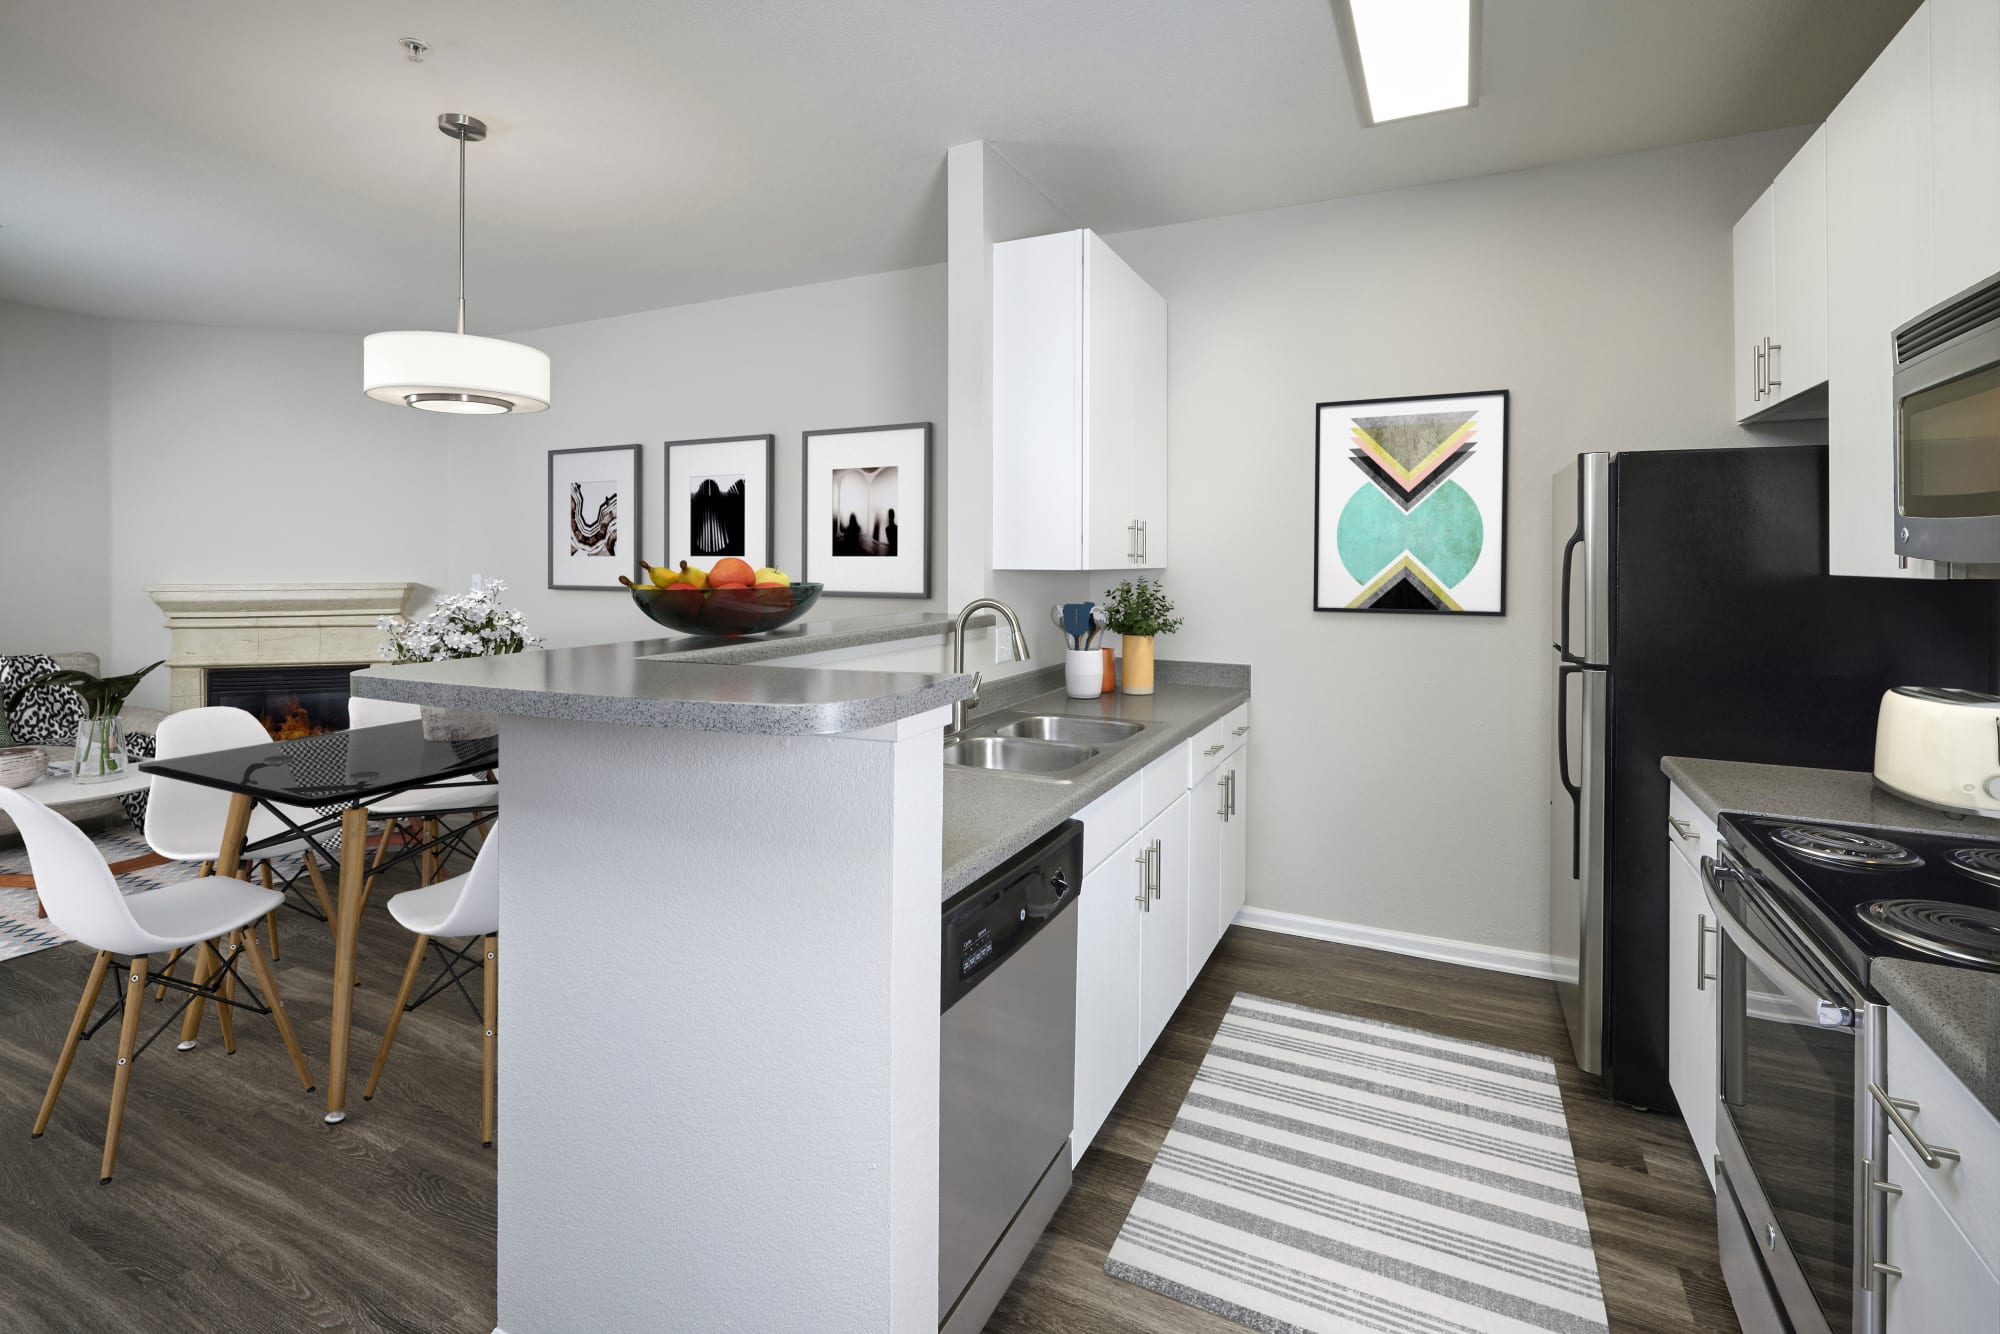 Renovated white kitchen with hardwood floors overlooking the living room with a fireplace at Bear Valley Park in Denver, Colorado